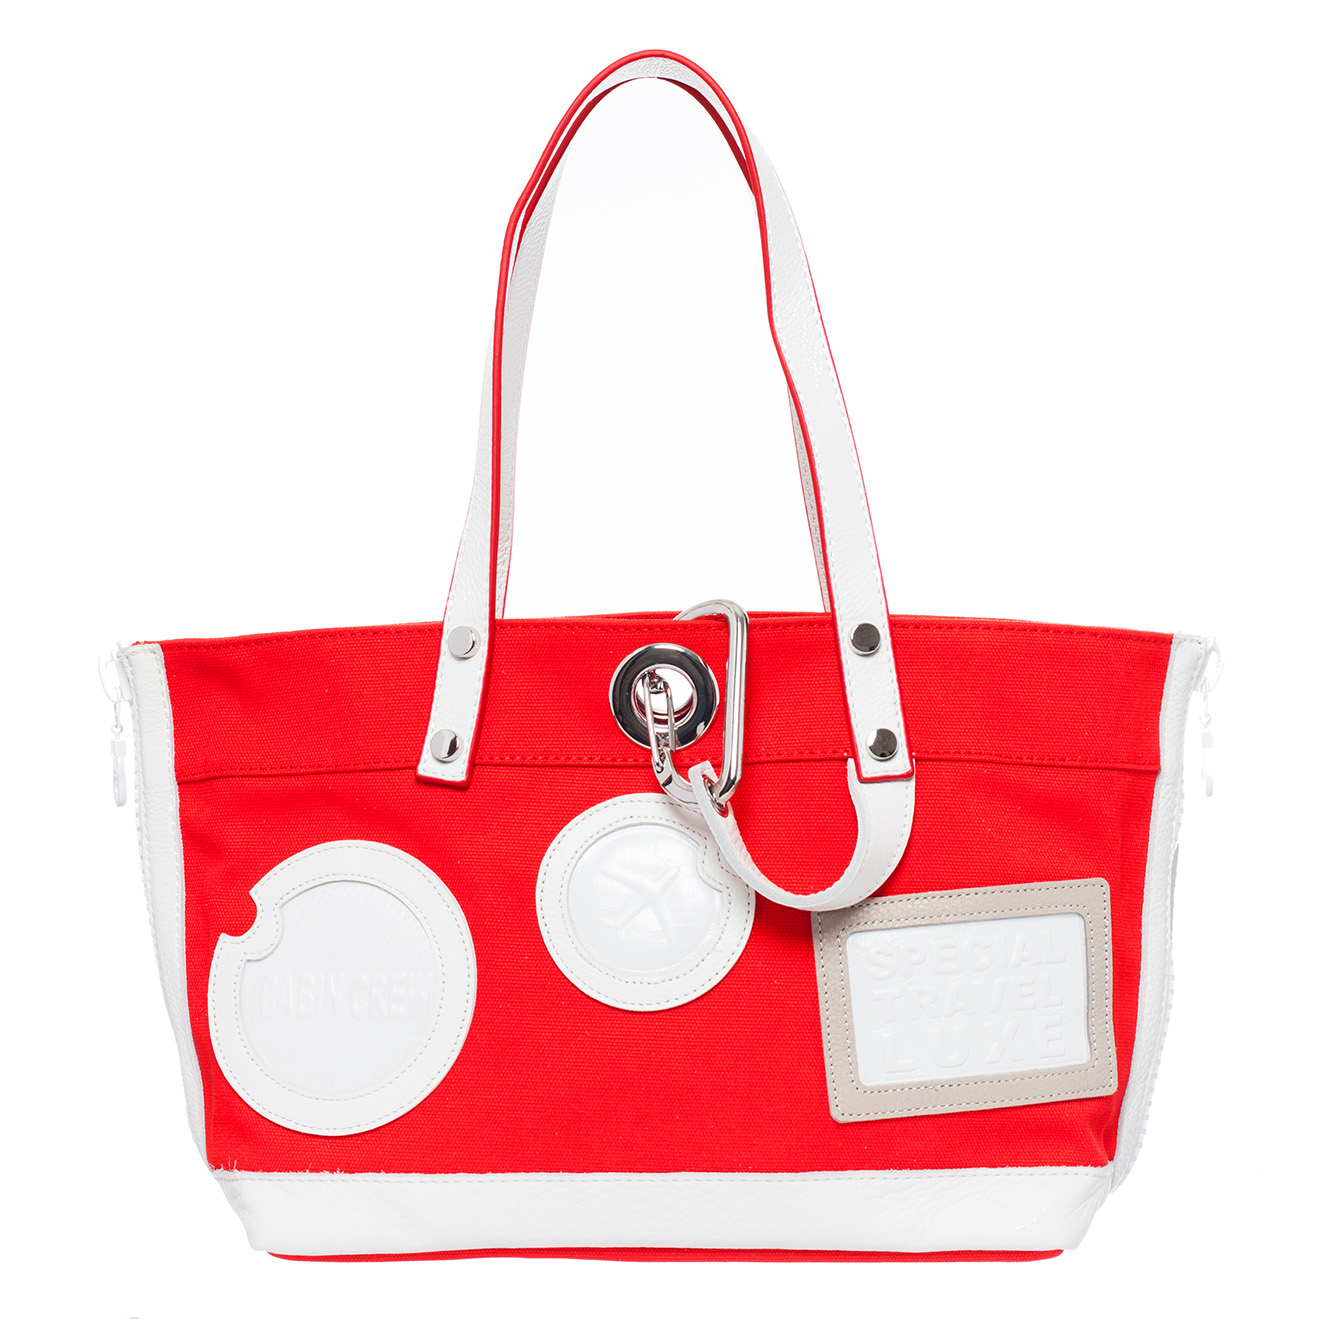 Cabas Julia in Saint Tropez rouge/blanc 37x23.5x14 cm